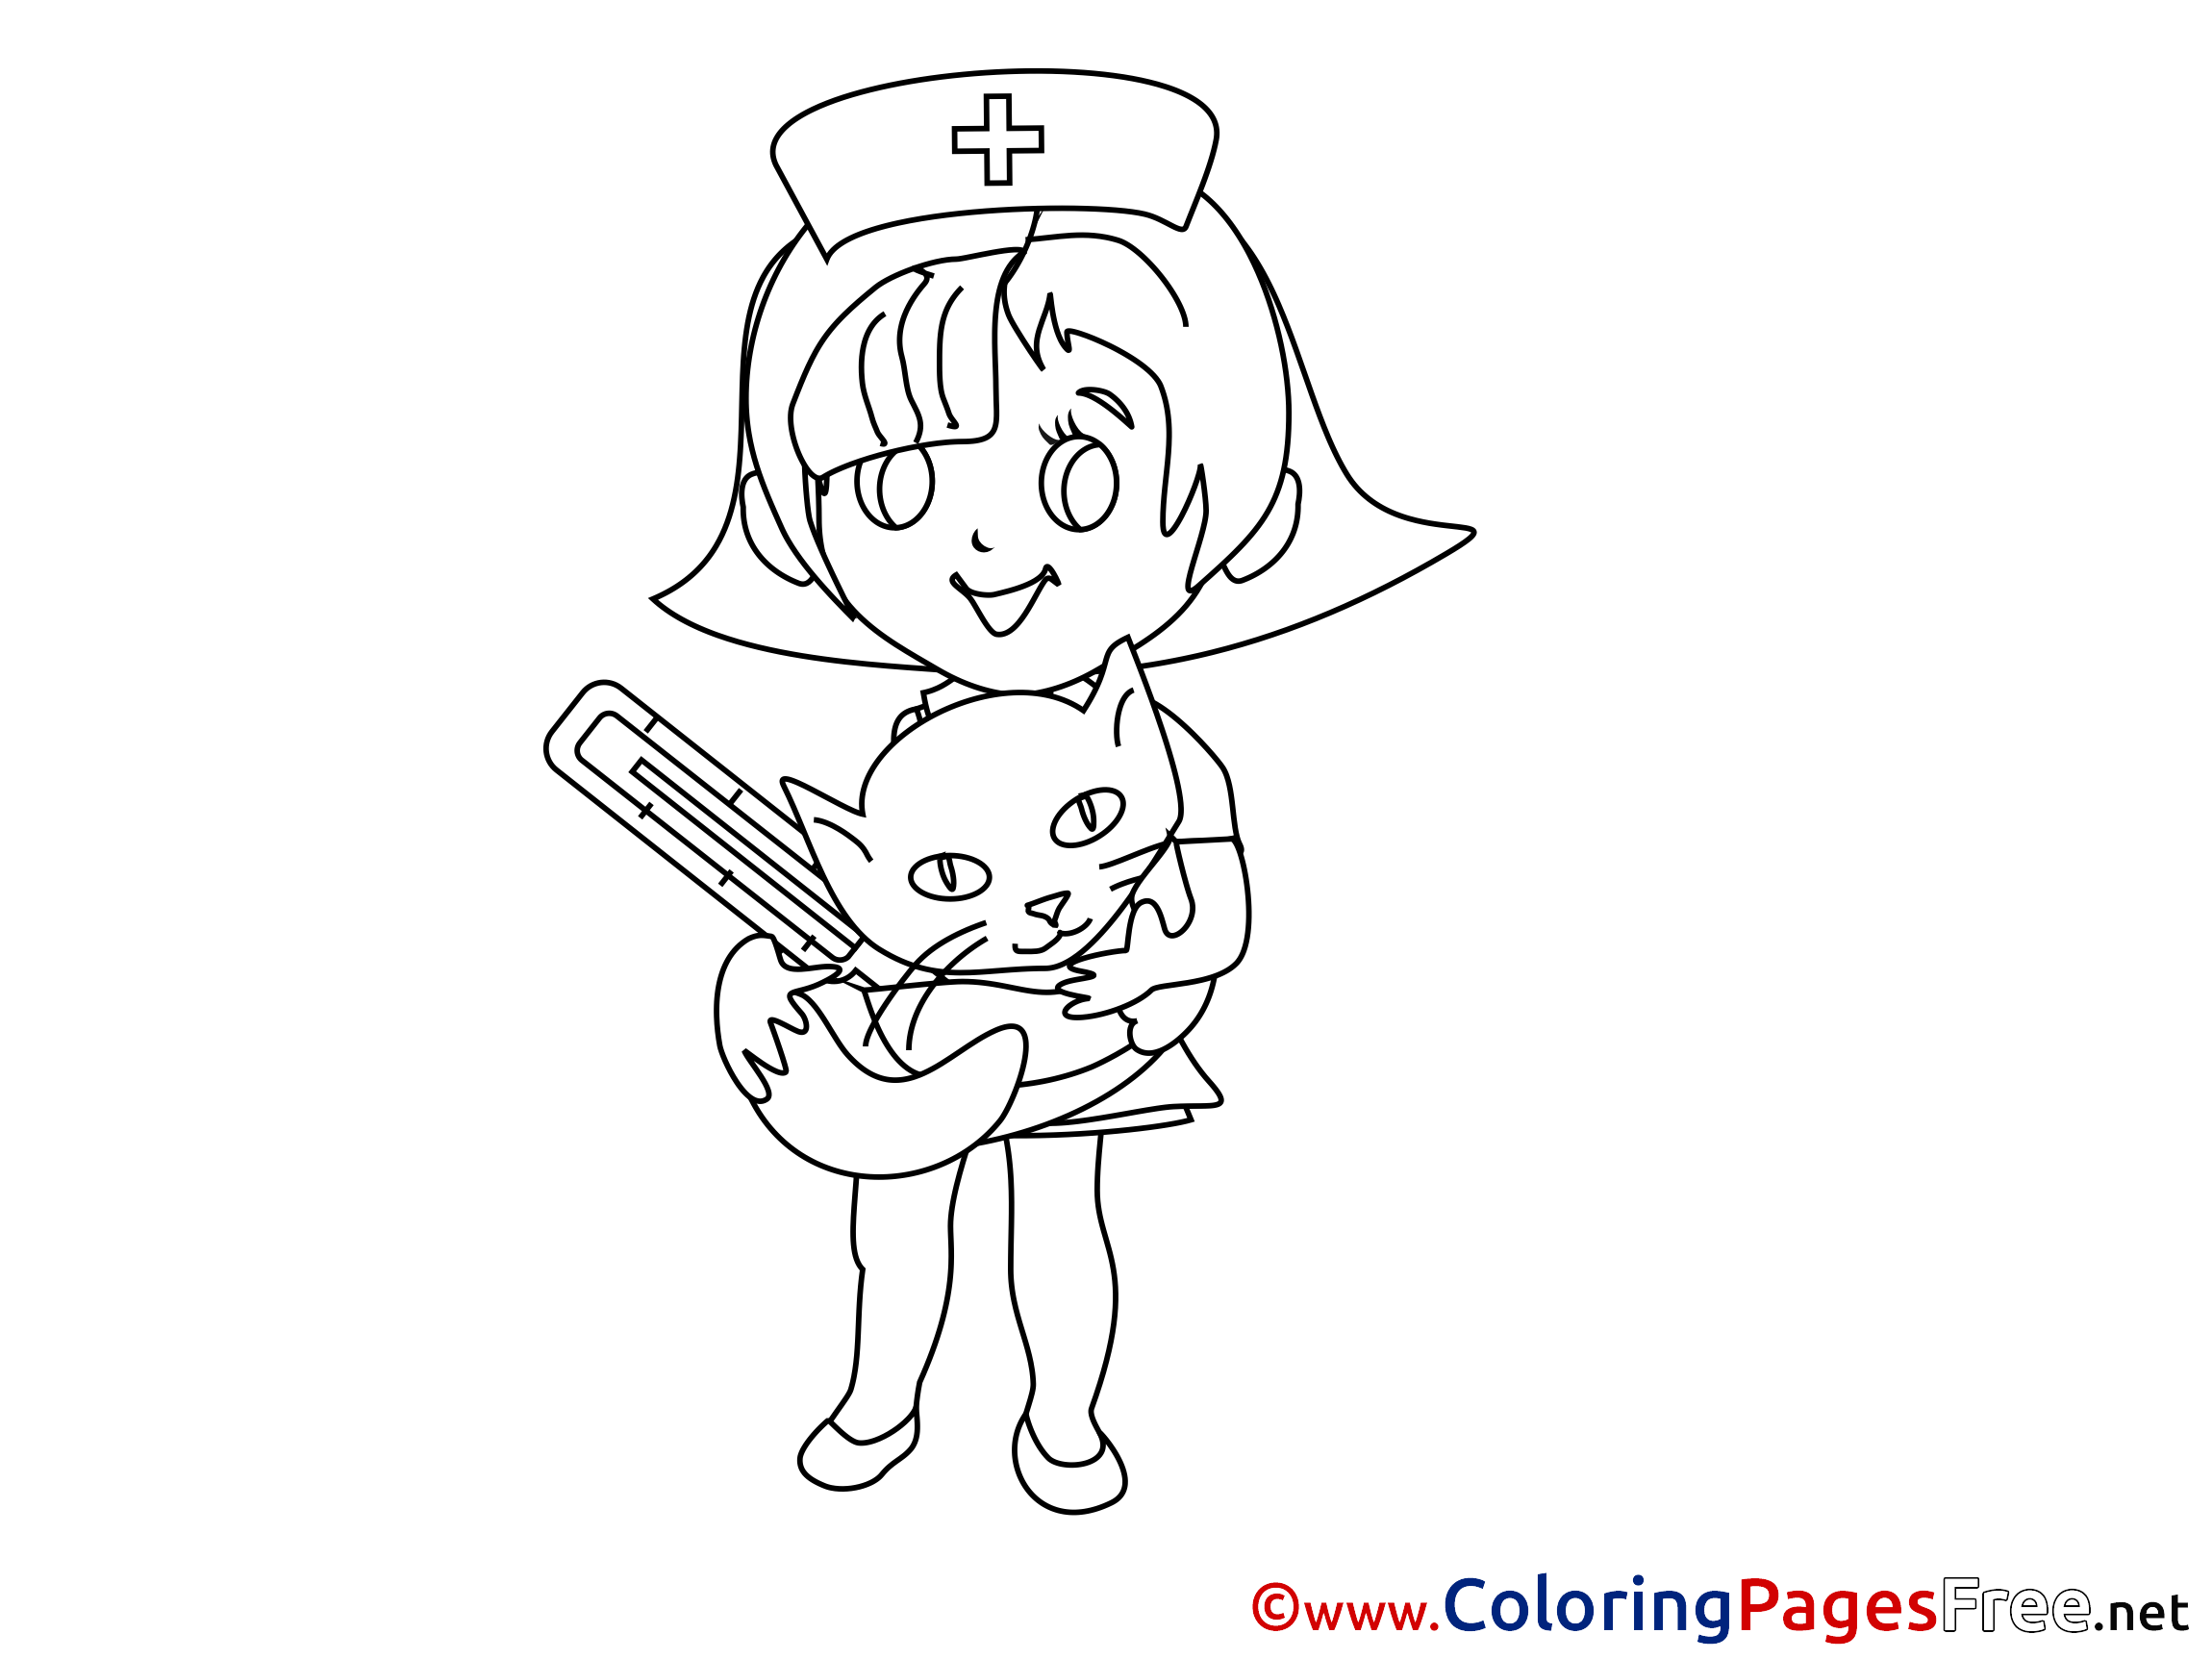 This Page Contains All Info About Coloring Sheet Veterinarian